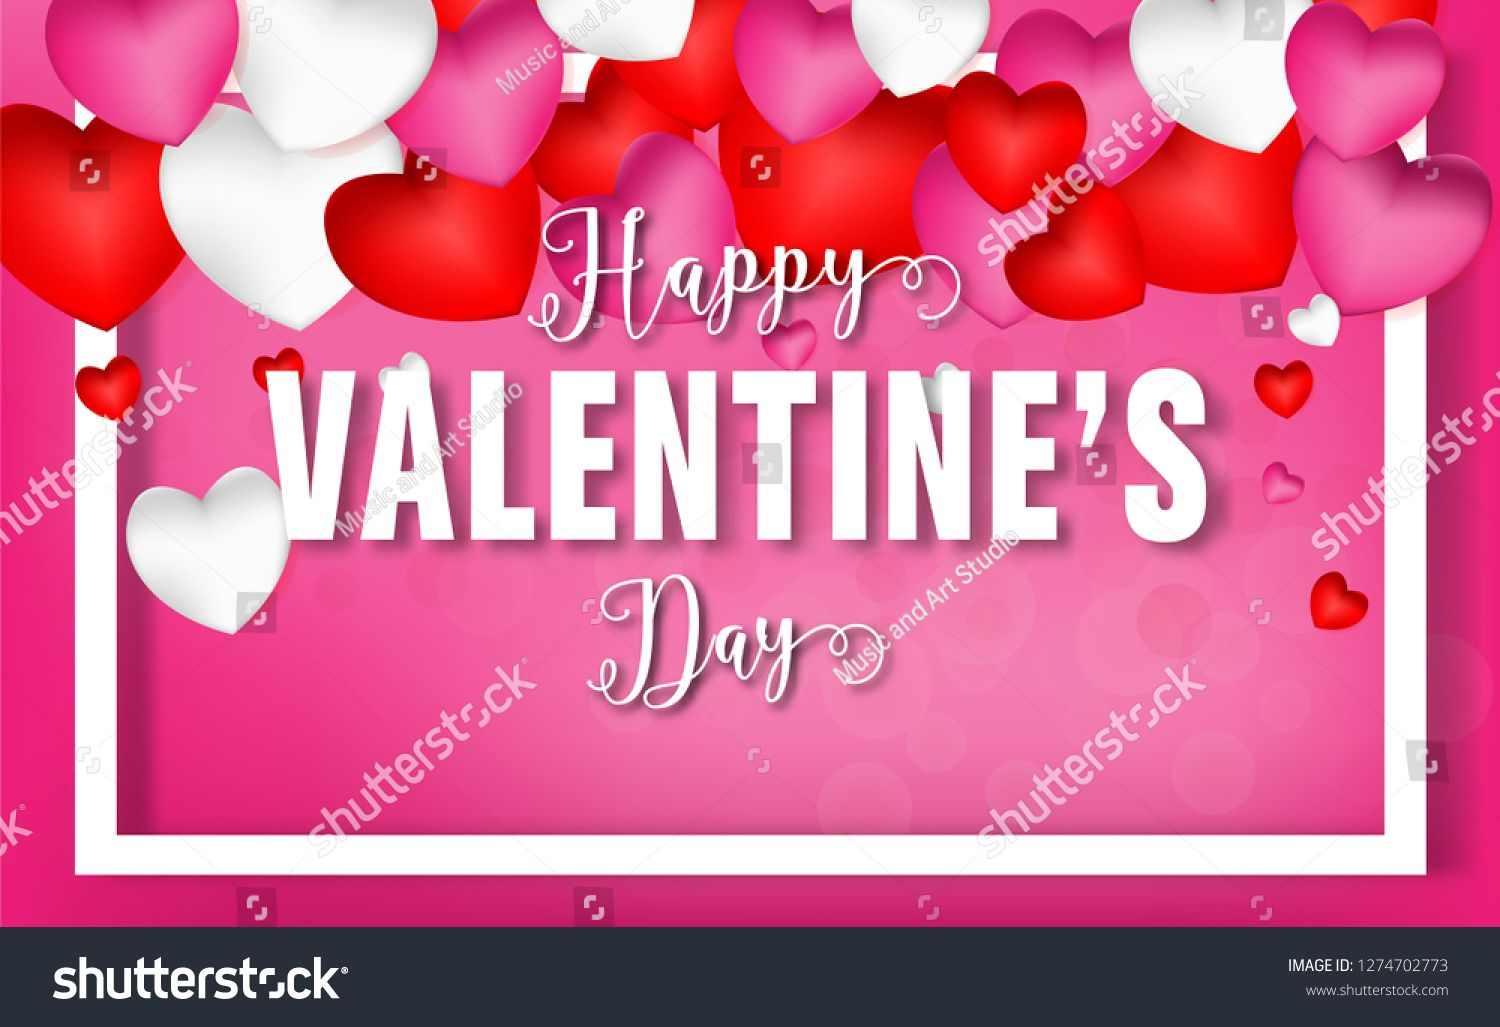 Valentines Day 3d Red Pink White Hearts And Happy Valentines Day Text Background Clip Art Design For Gree Happy Valentines Day Wedding Flyers Happy Valentine